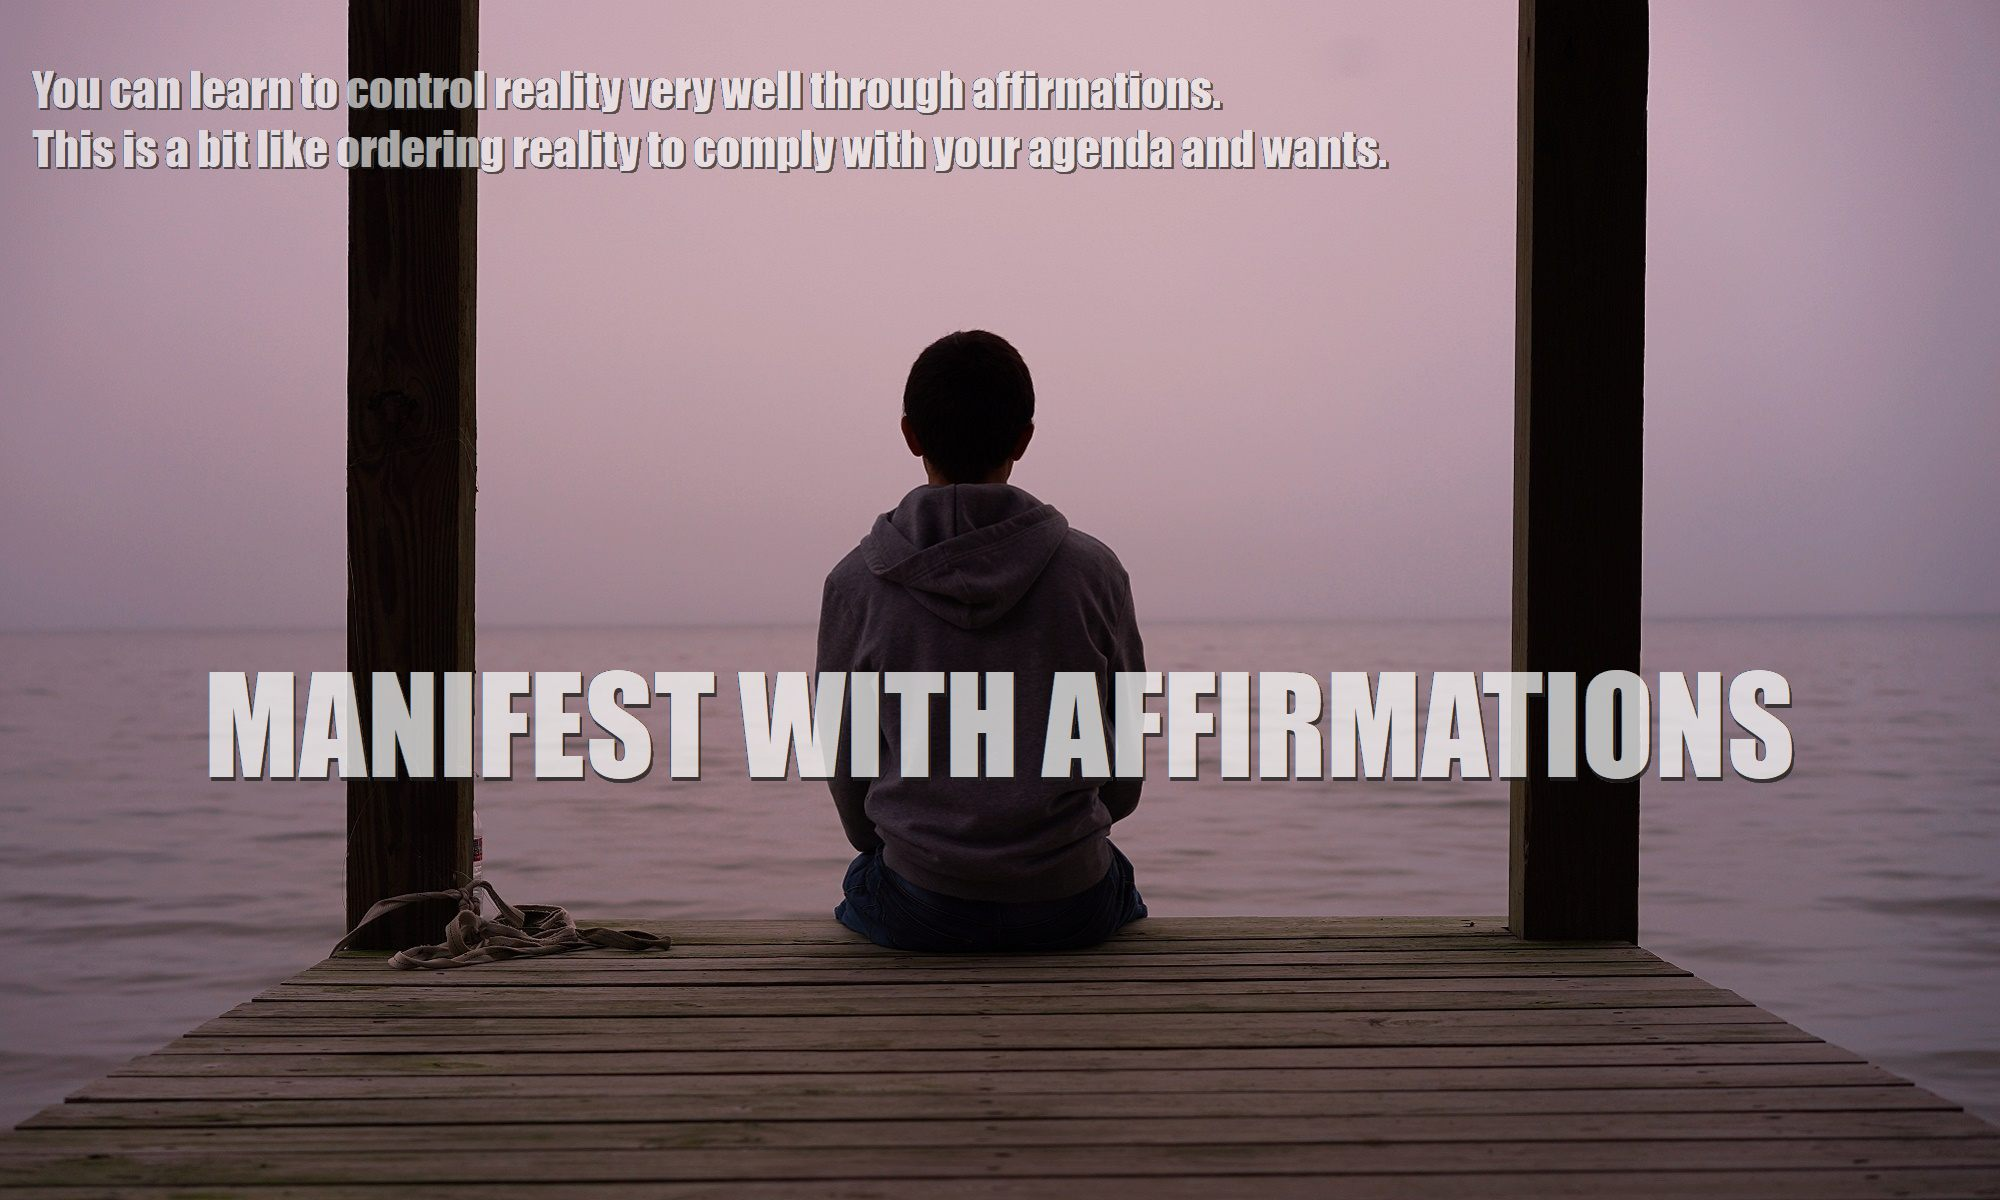 metaphysics-manifesting-use-affirmations-to-manifest-materialize-what-you-want-feature-2000